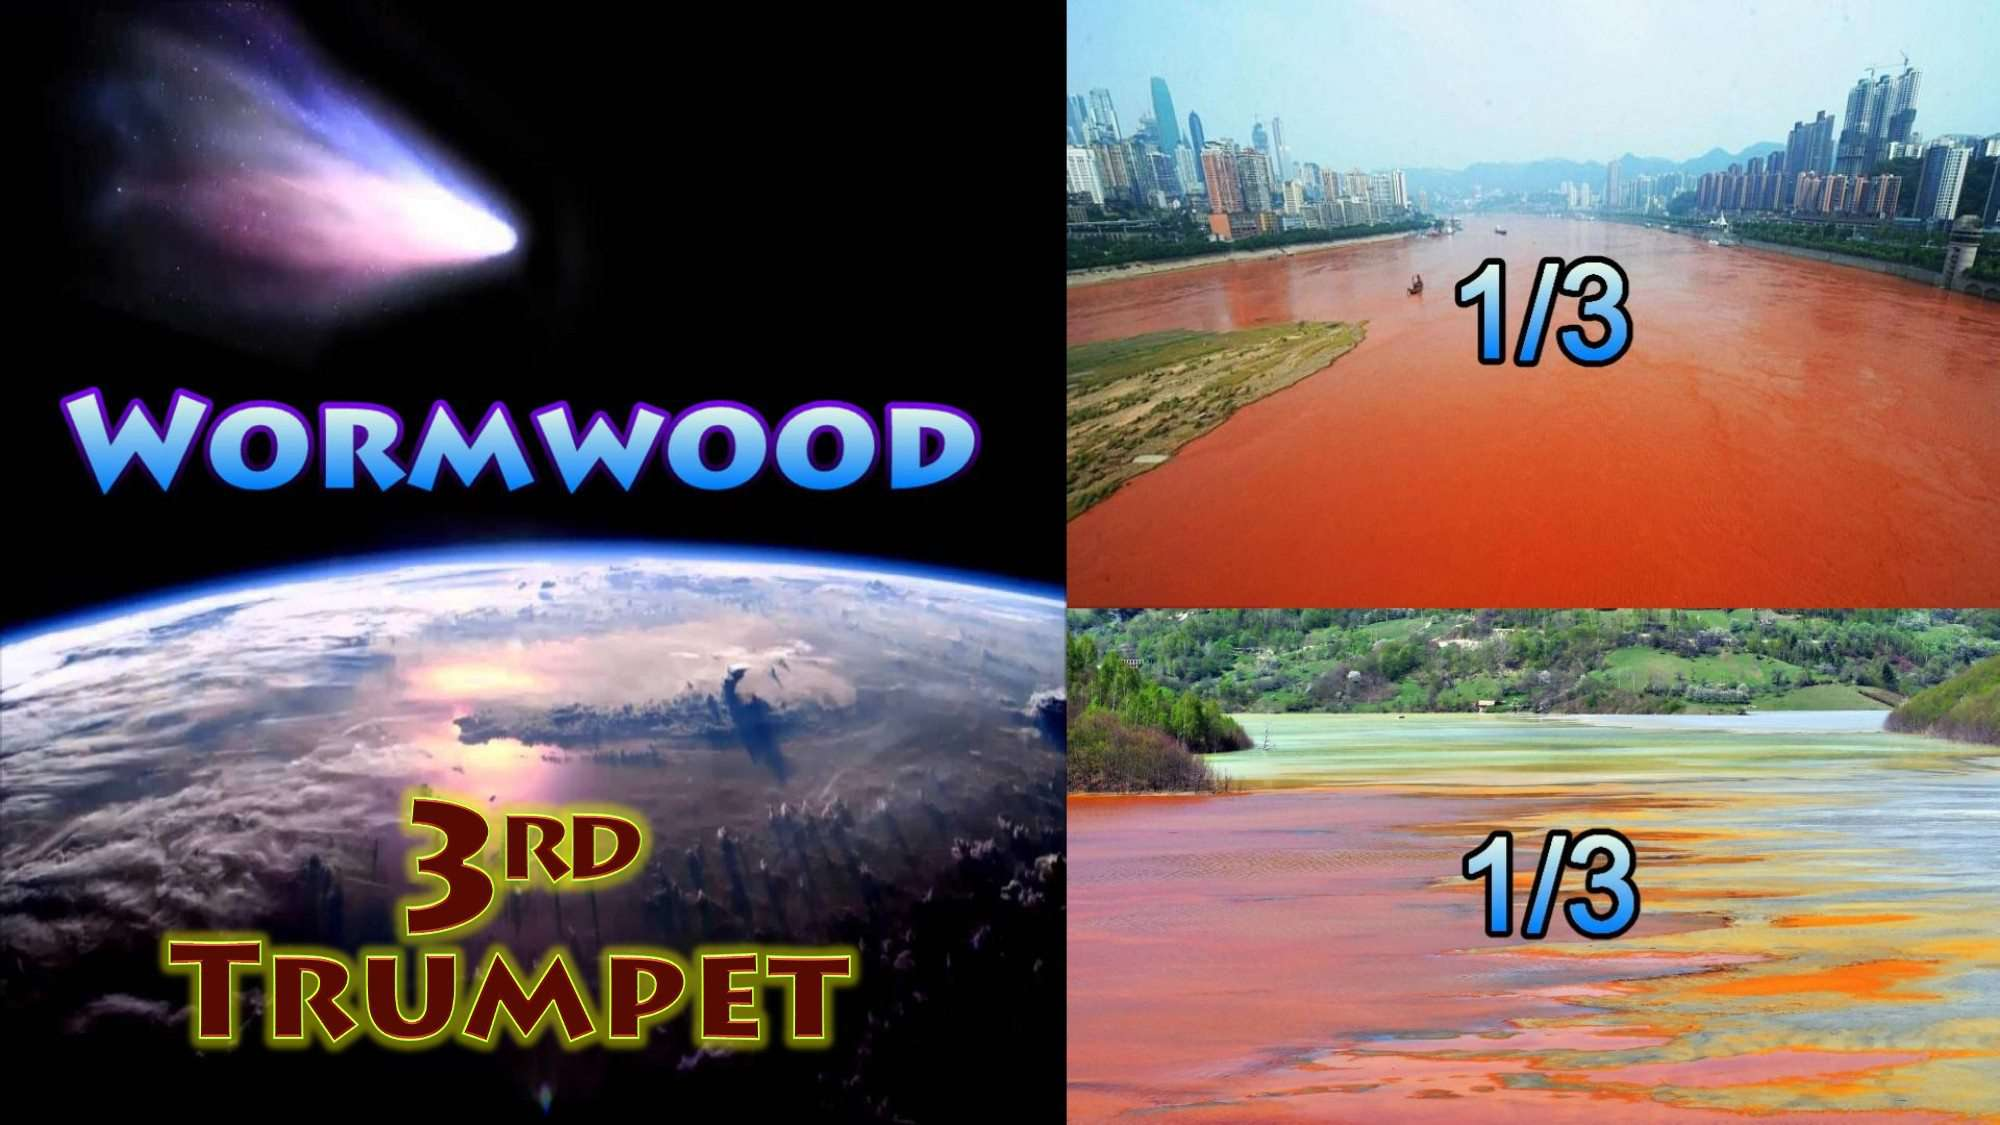 Third Trumpet,Star fell,Wormwood,Third Rivers,third Springs,Bitter,Poison Water,Seven Trumpets,Book of Revelation,Revelation Chapter 8,Apocalypse